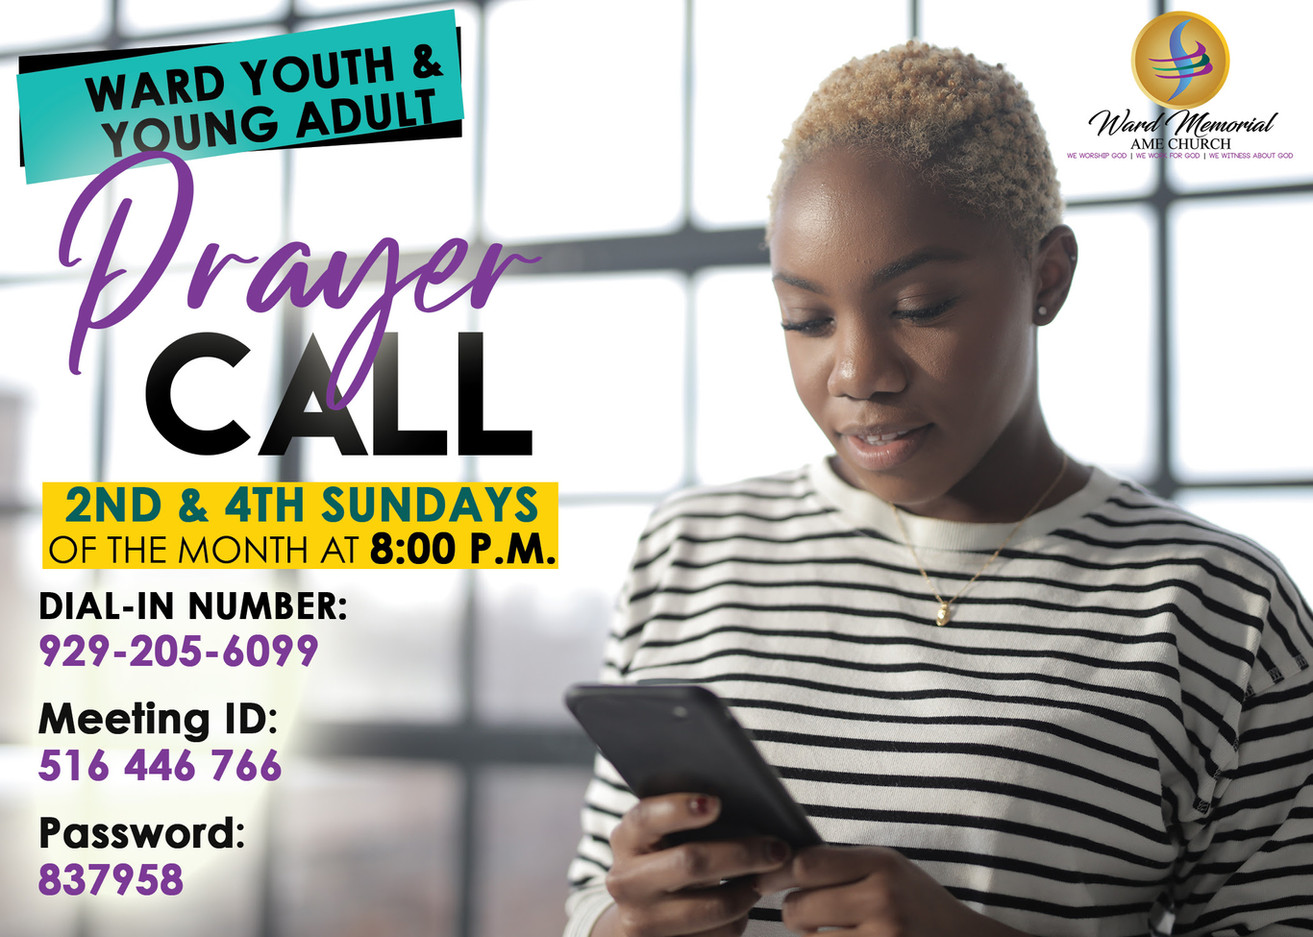 Youth & Young Adult Prayer Call